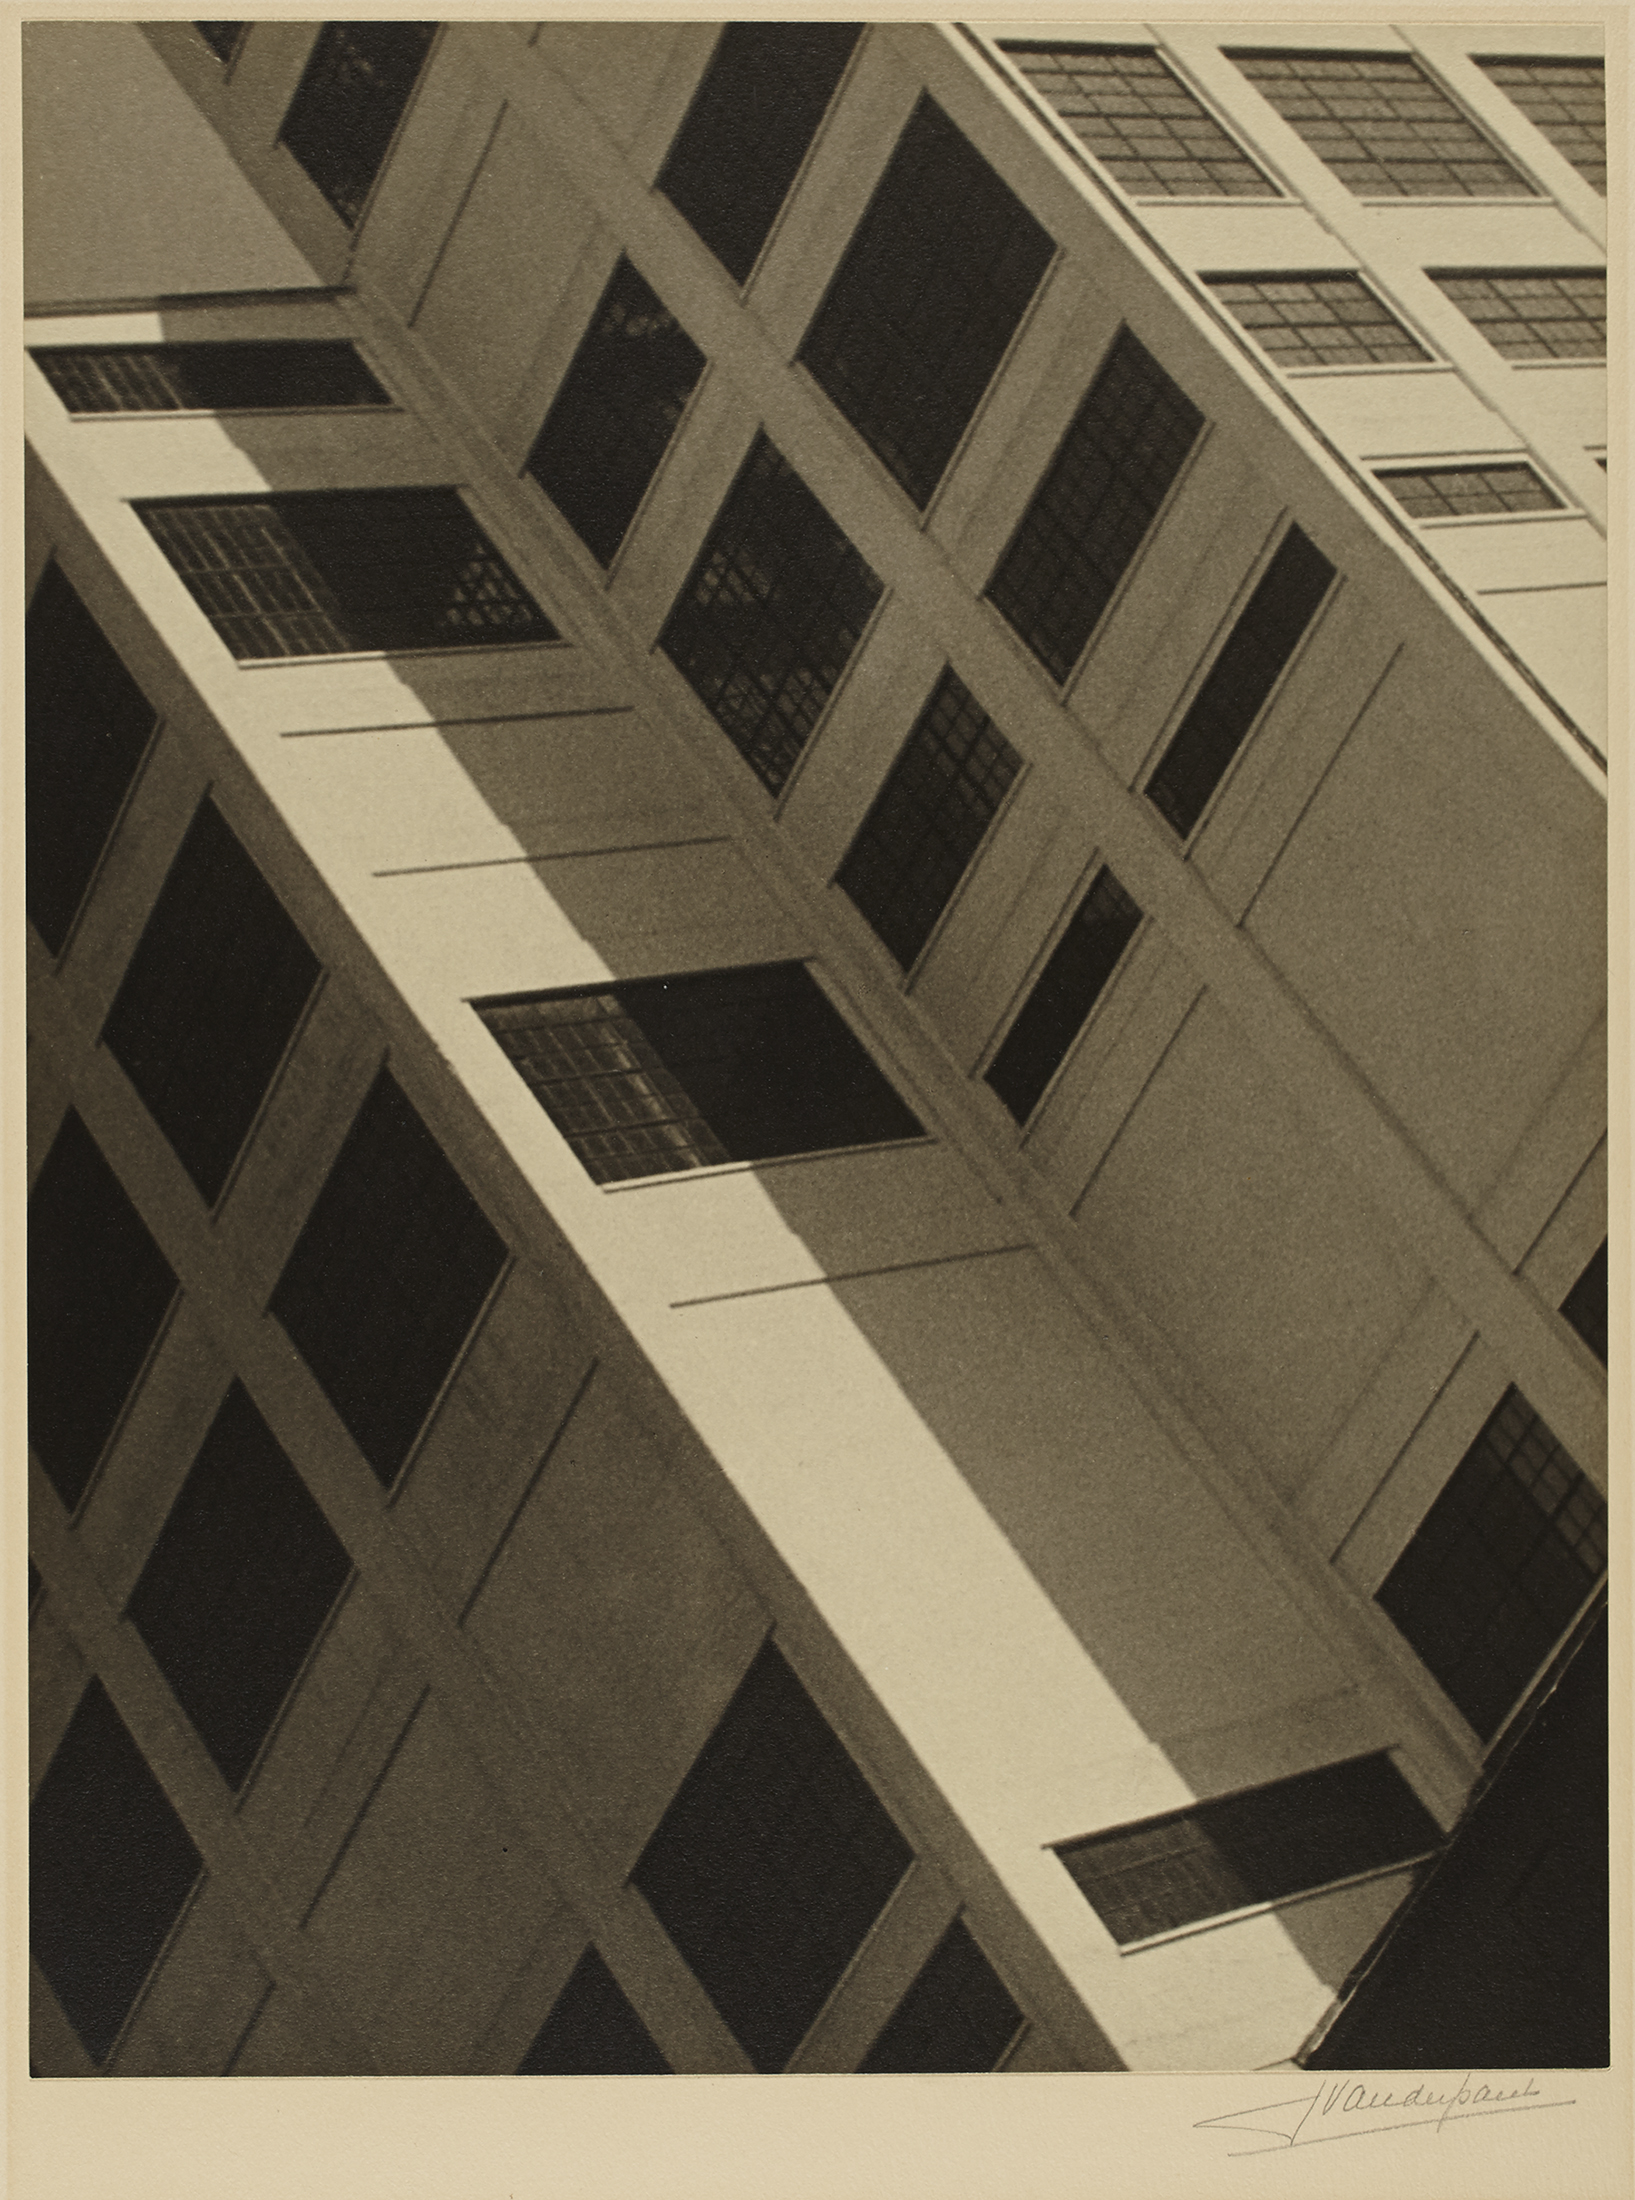 This black-and-white photograph presents an oblique view of a multistory building with large dark windows. The tight framing reveals only part of the architecture, whose structure occupies the entire surface of the image.